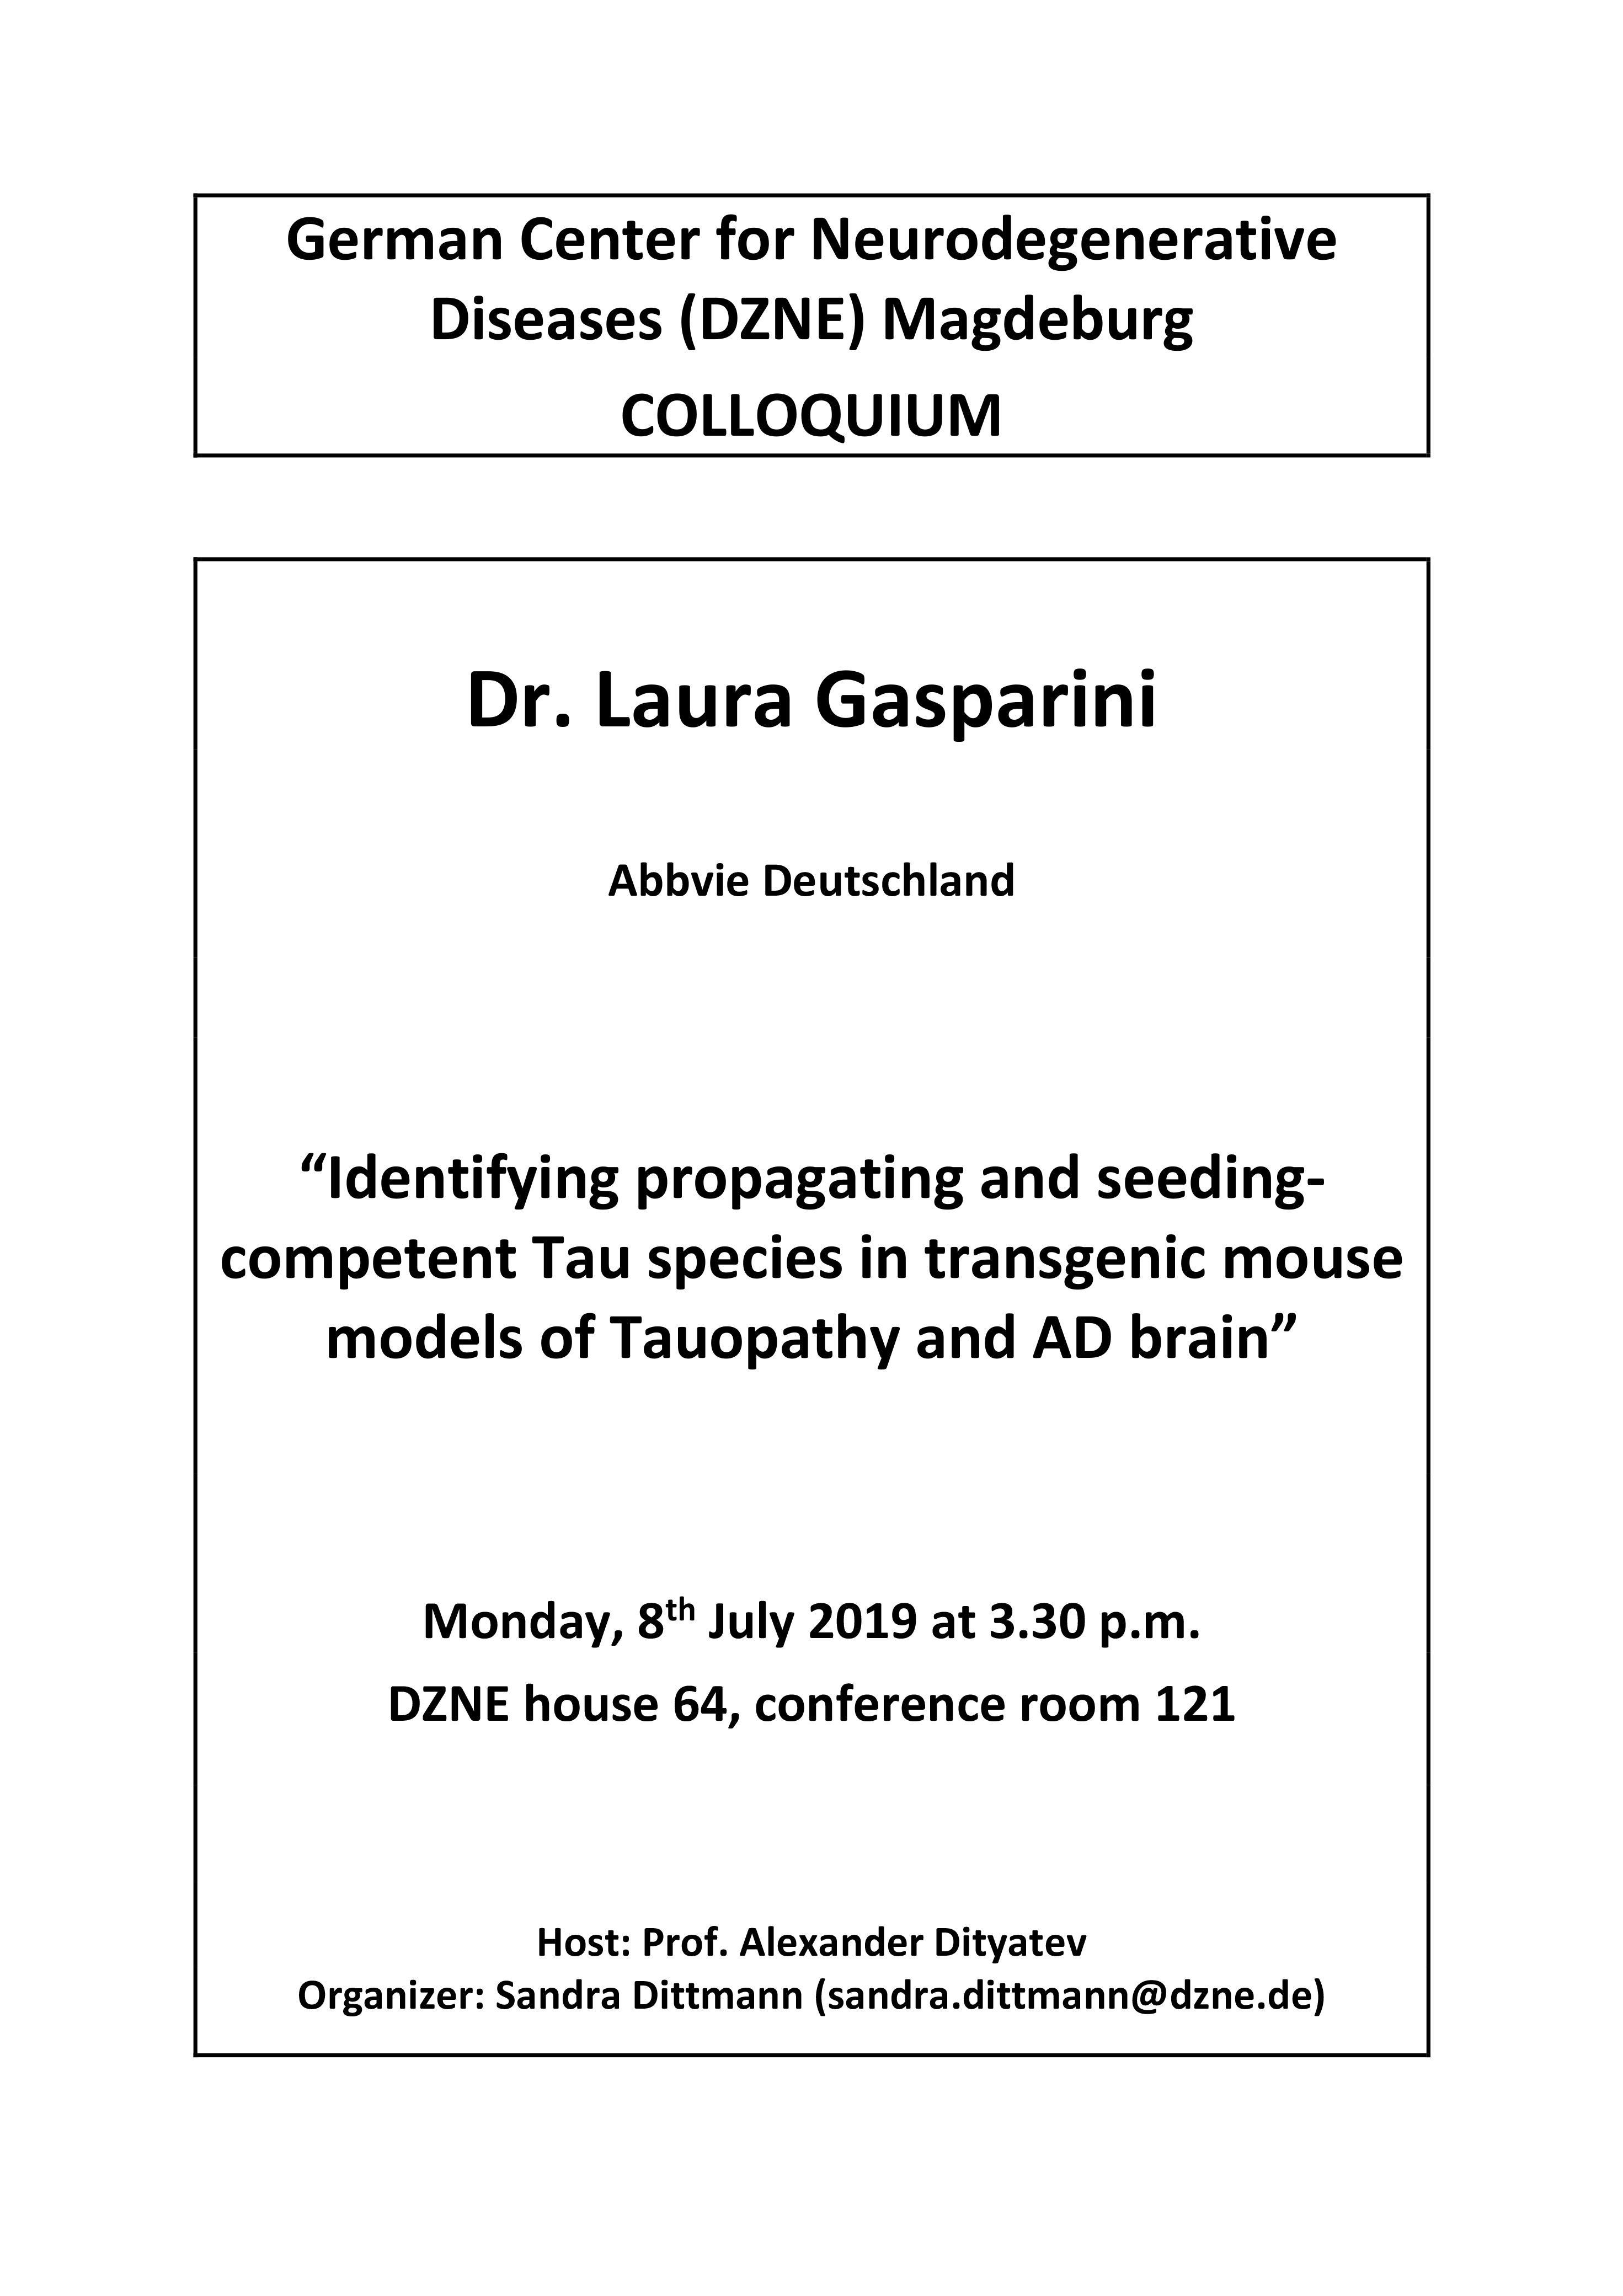 DZNE Colloquium: Identifying propagating and seedingcompetent Tau species in transgenic mouse models of Tauopathy and AD brain @ DZNE house 64, conference room 121